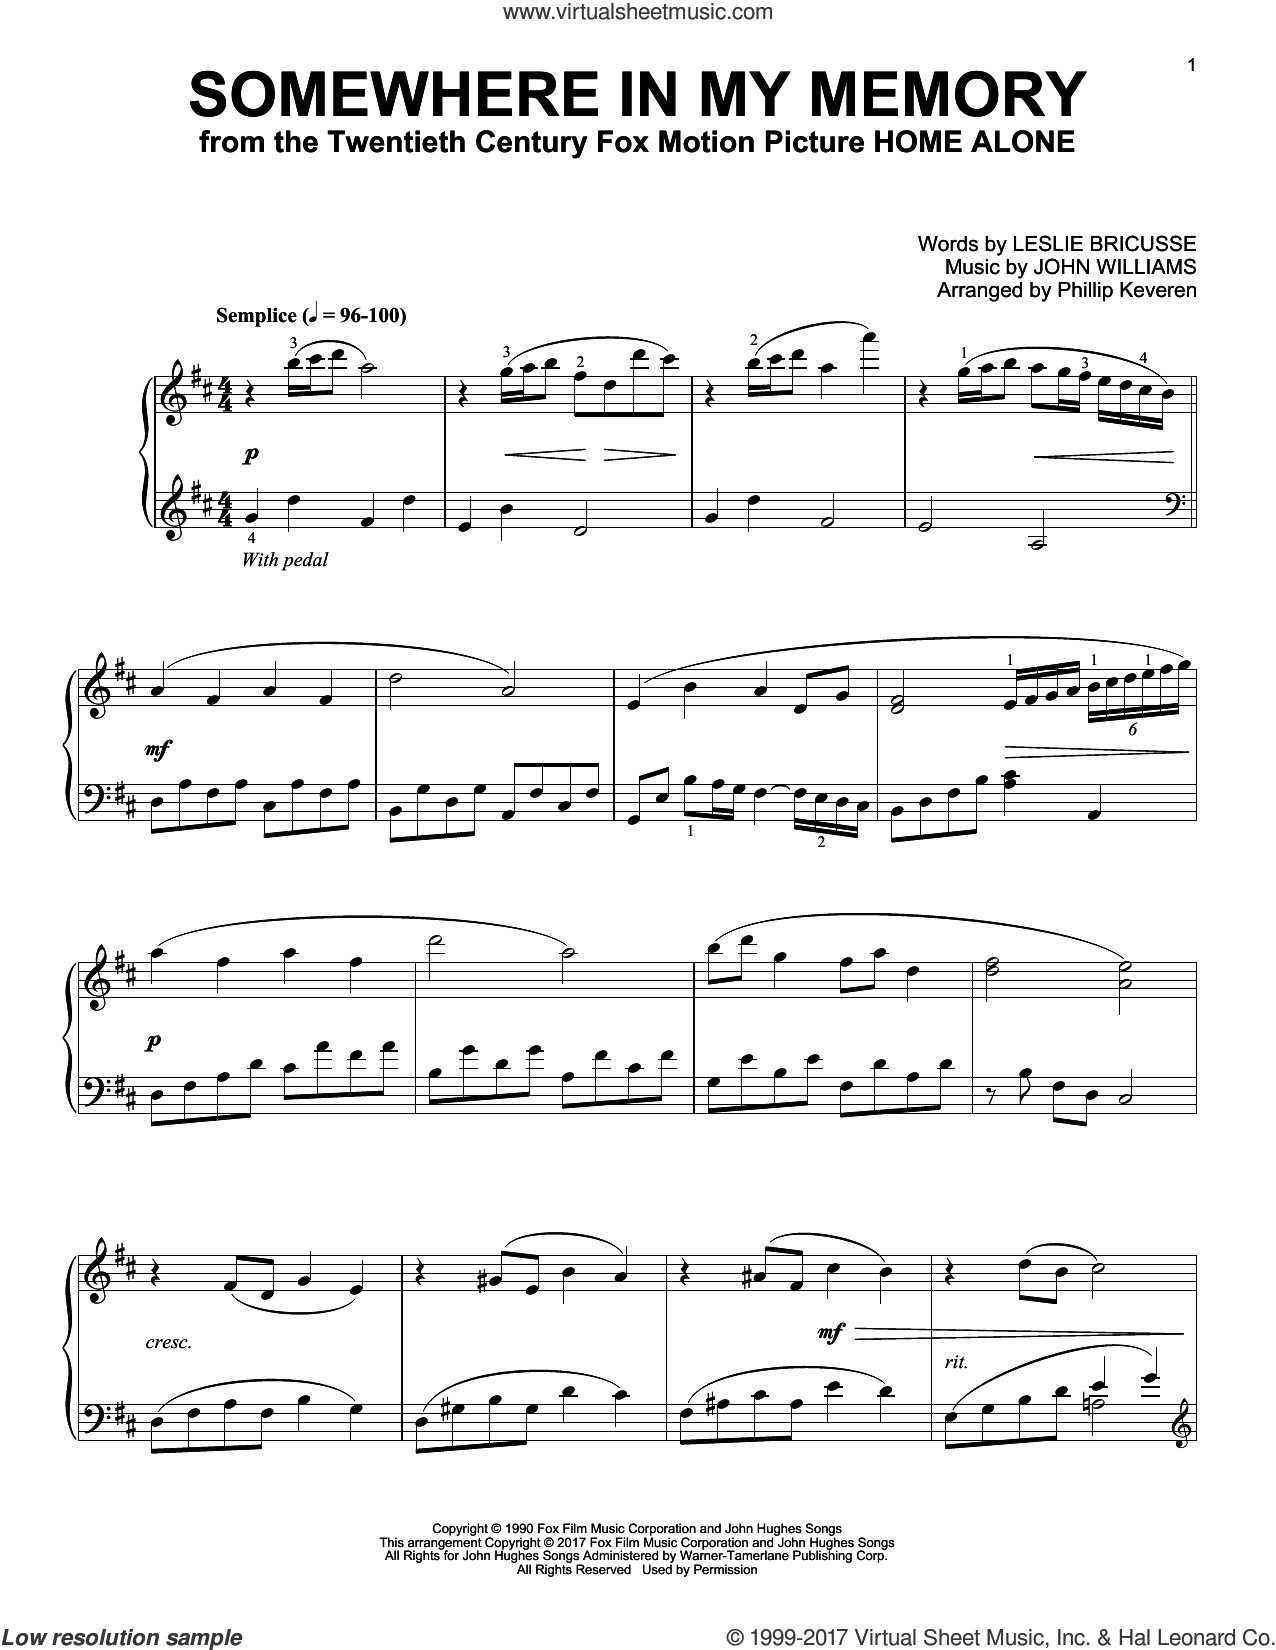 Somewhere In My Memory (arr. Phillip Keveren) sheet music for piano solo by John Williams, Phillip Keveren and Leslie Bricusse, intermediate skill level